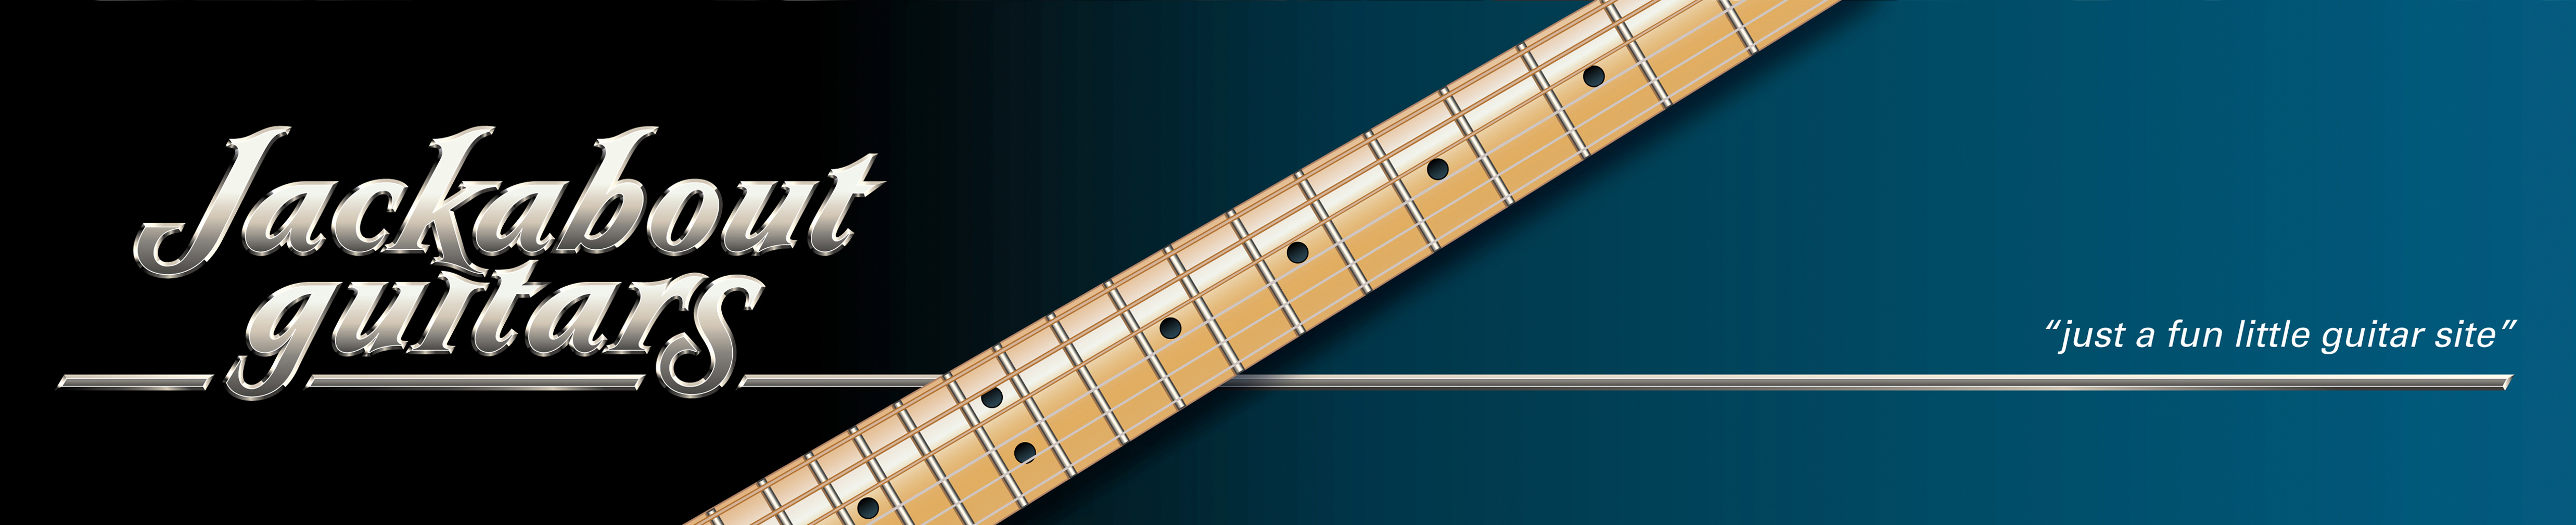 & SOEST GUITAR CELEBRATING 40 YEARS AT THE TOP OF THE GUITAR INDUSTRY -